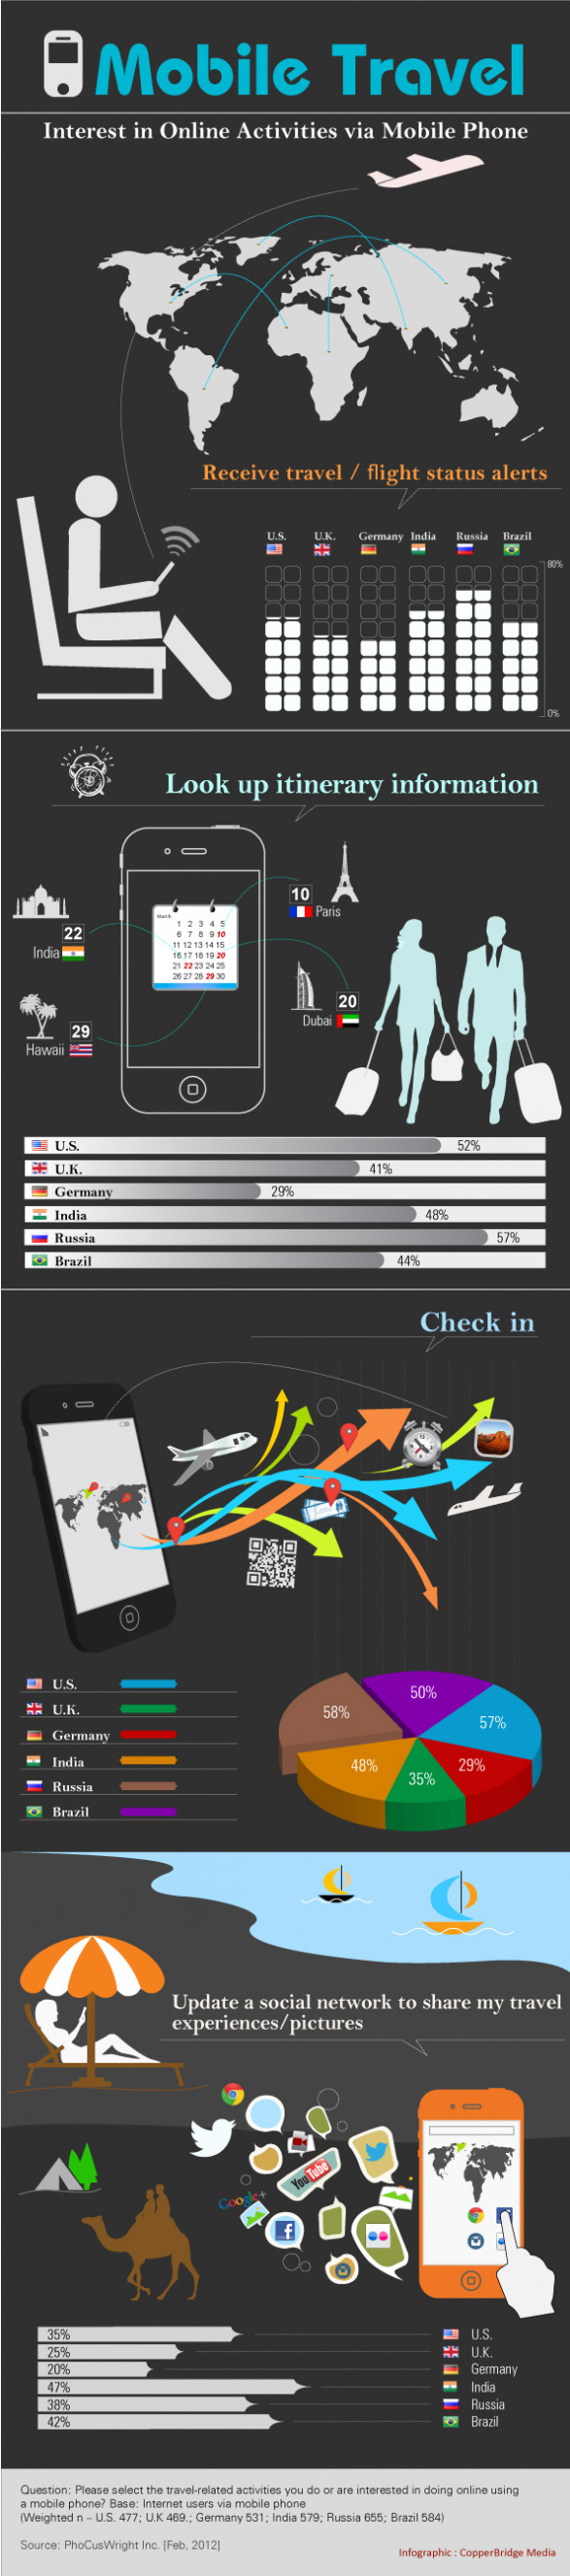 How do global travelers use mobile phones to make decisions?